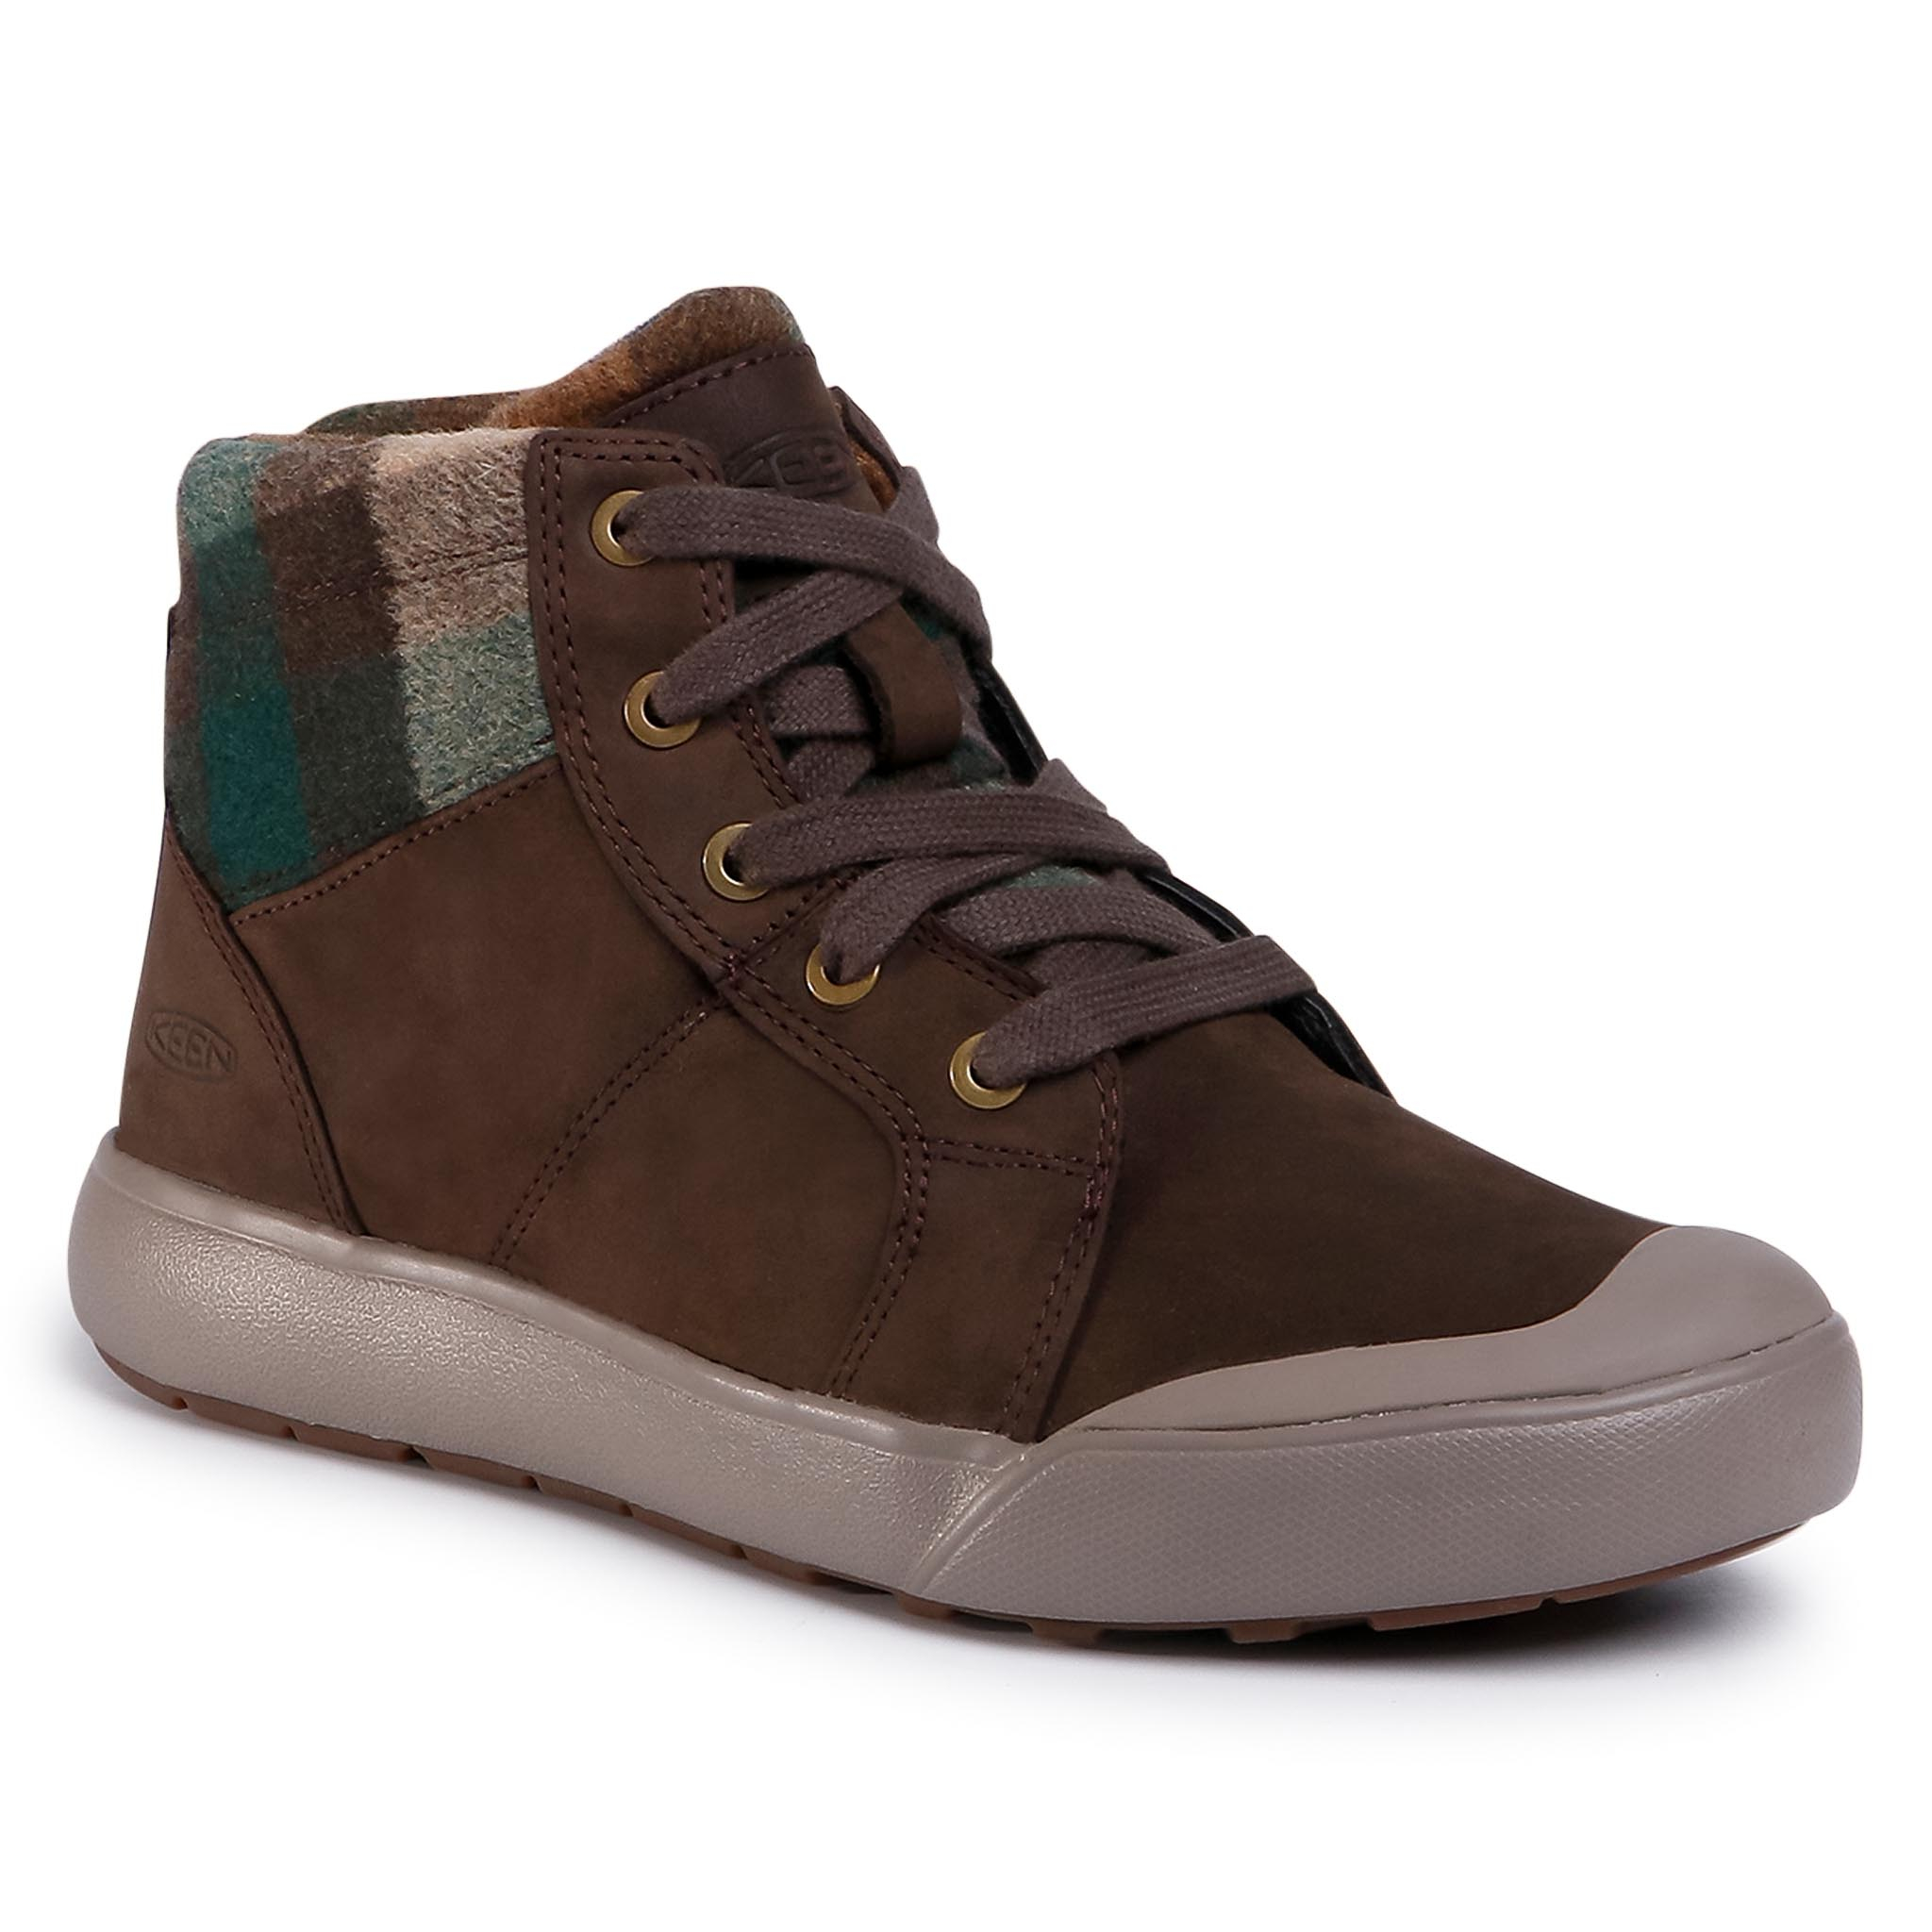 Sneakers KEEN - Elena Mid 1022035 Brown